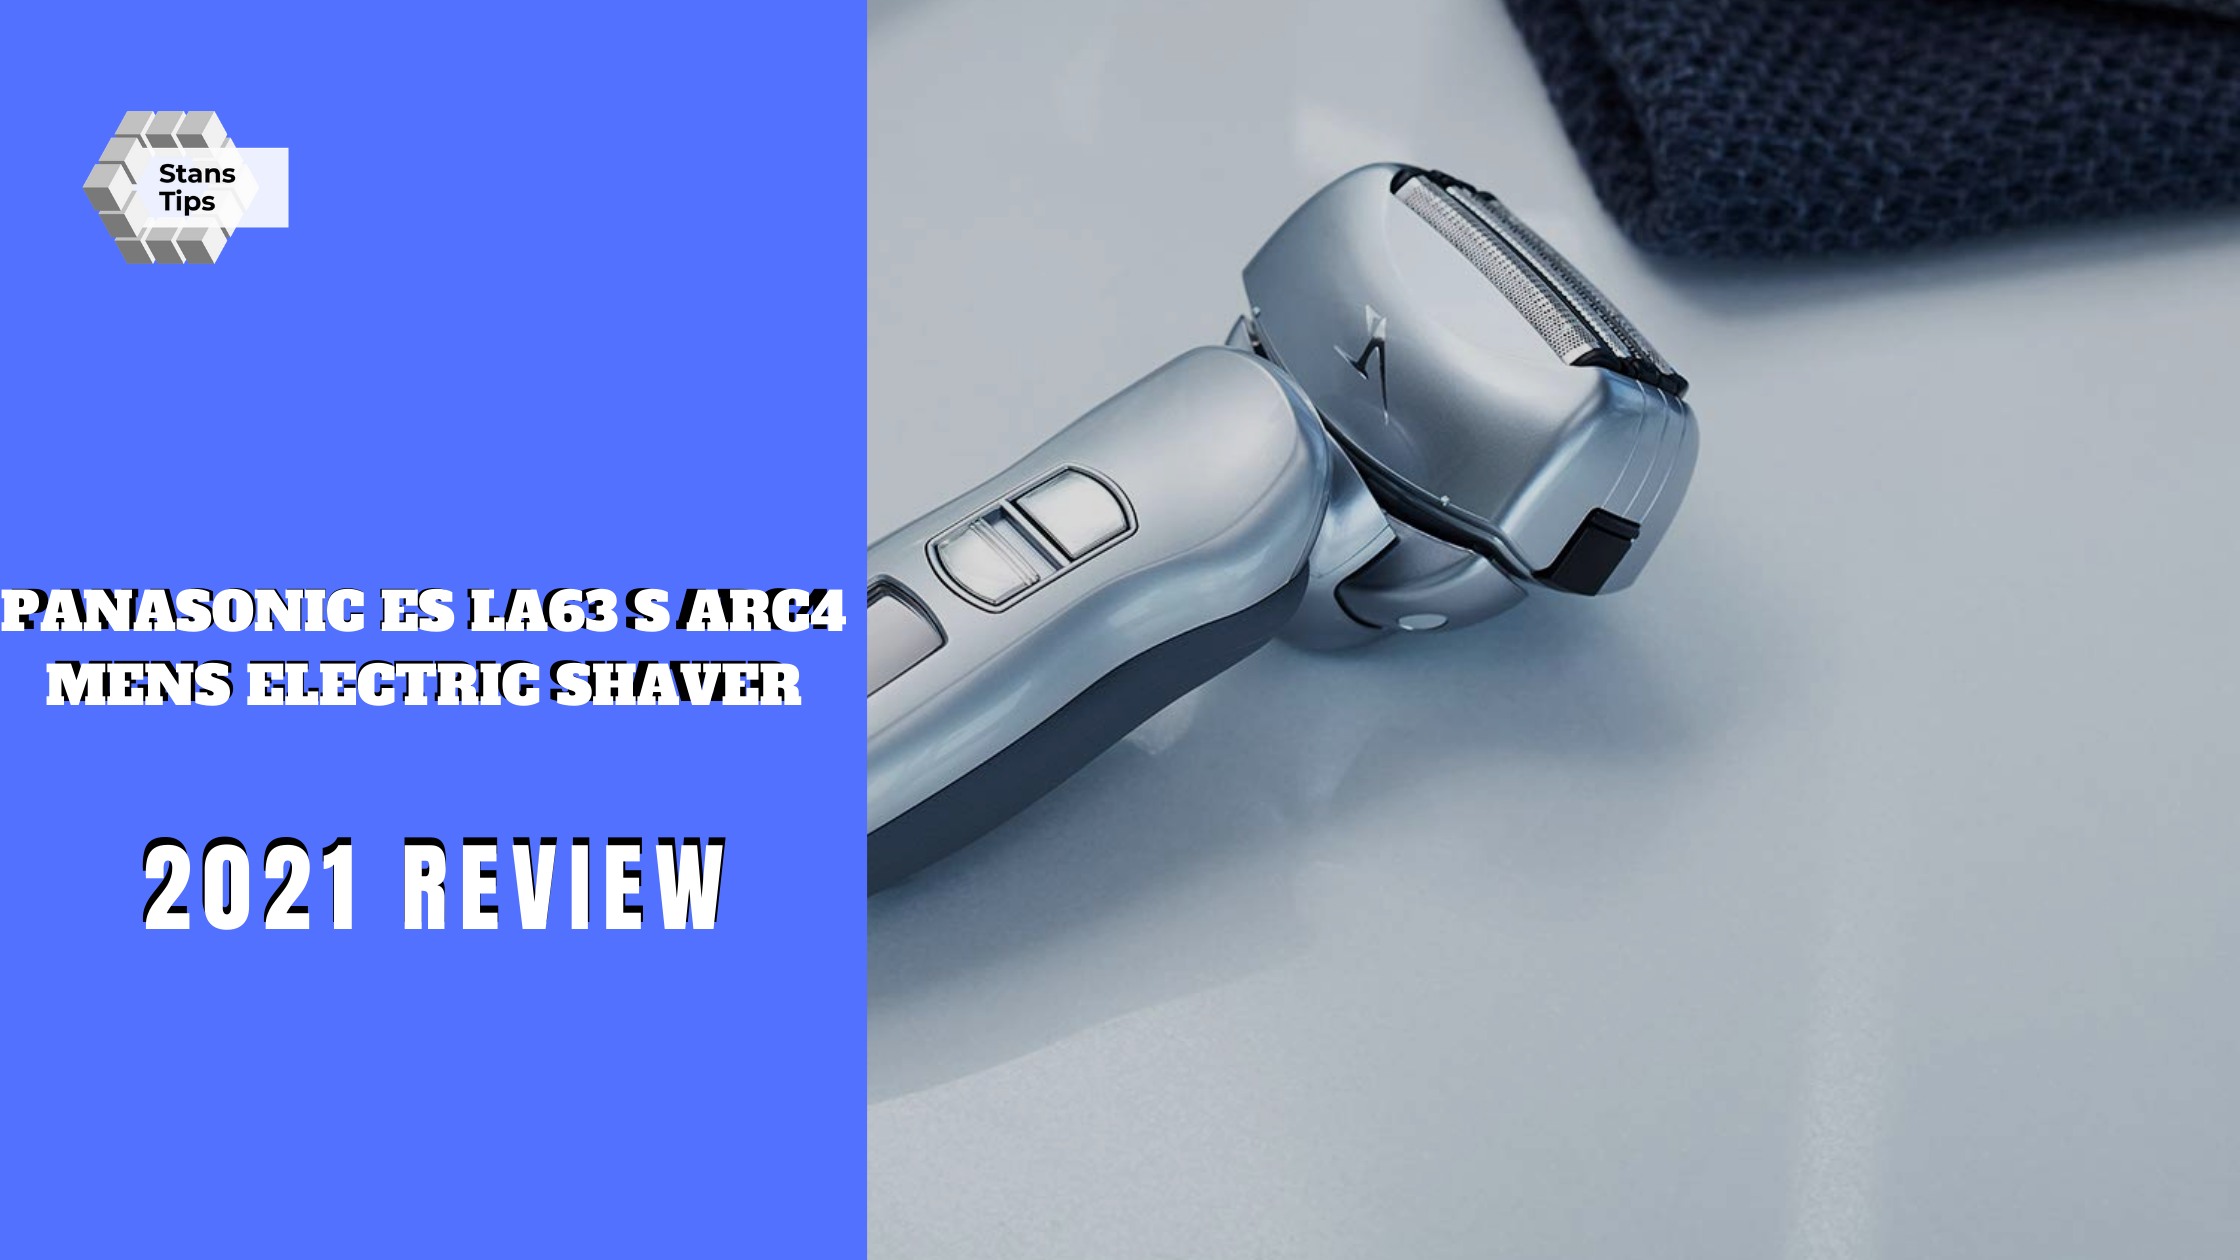 Panasonic es la63 s arc4 mens electric shaver review